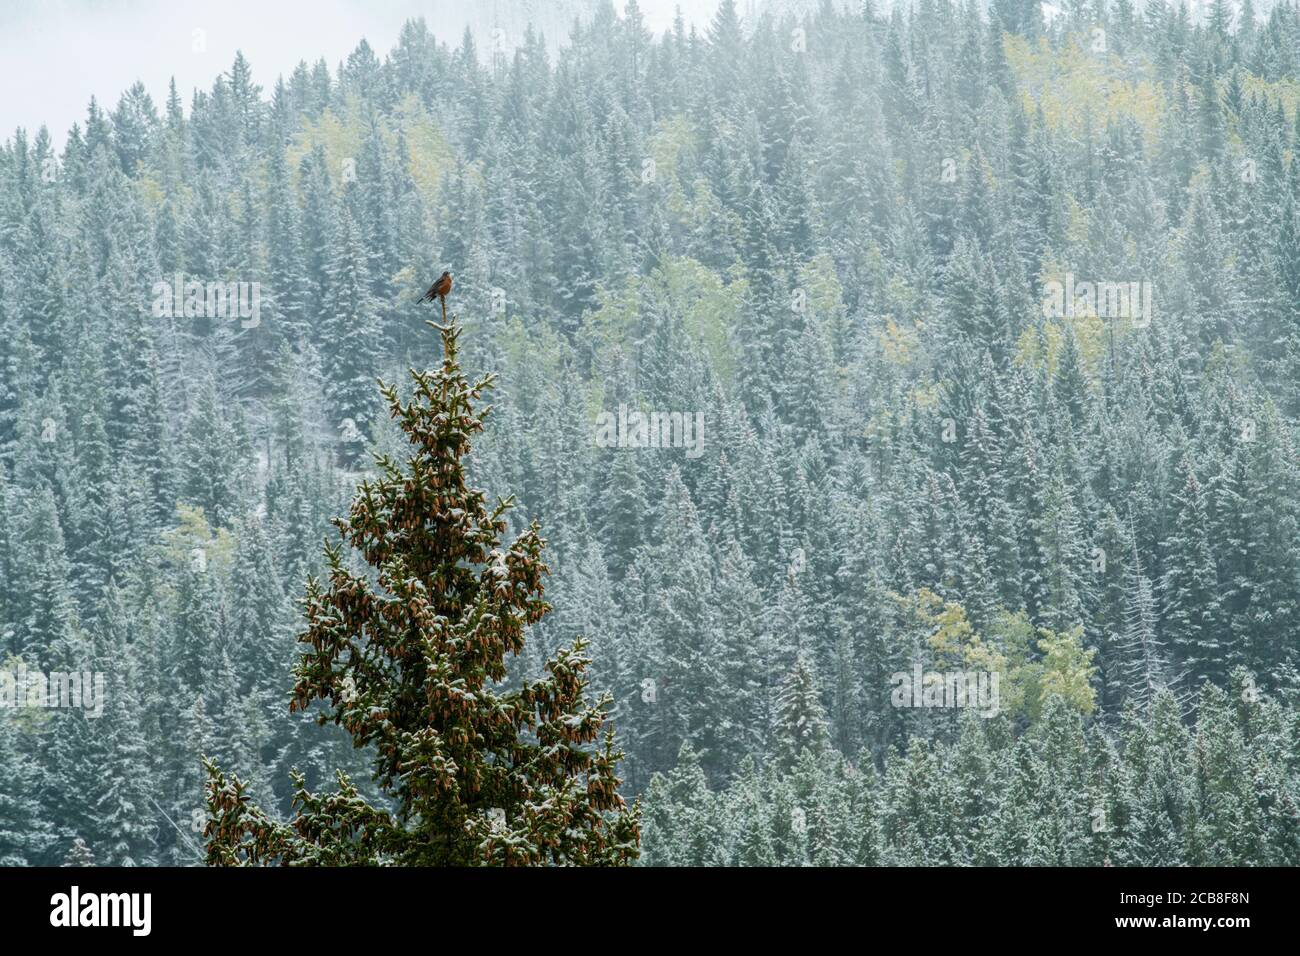 American Robin singing from the tip of a tree with fresh snow, Banff National Park, Alberta, Canada Stock Photo